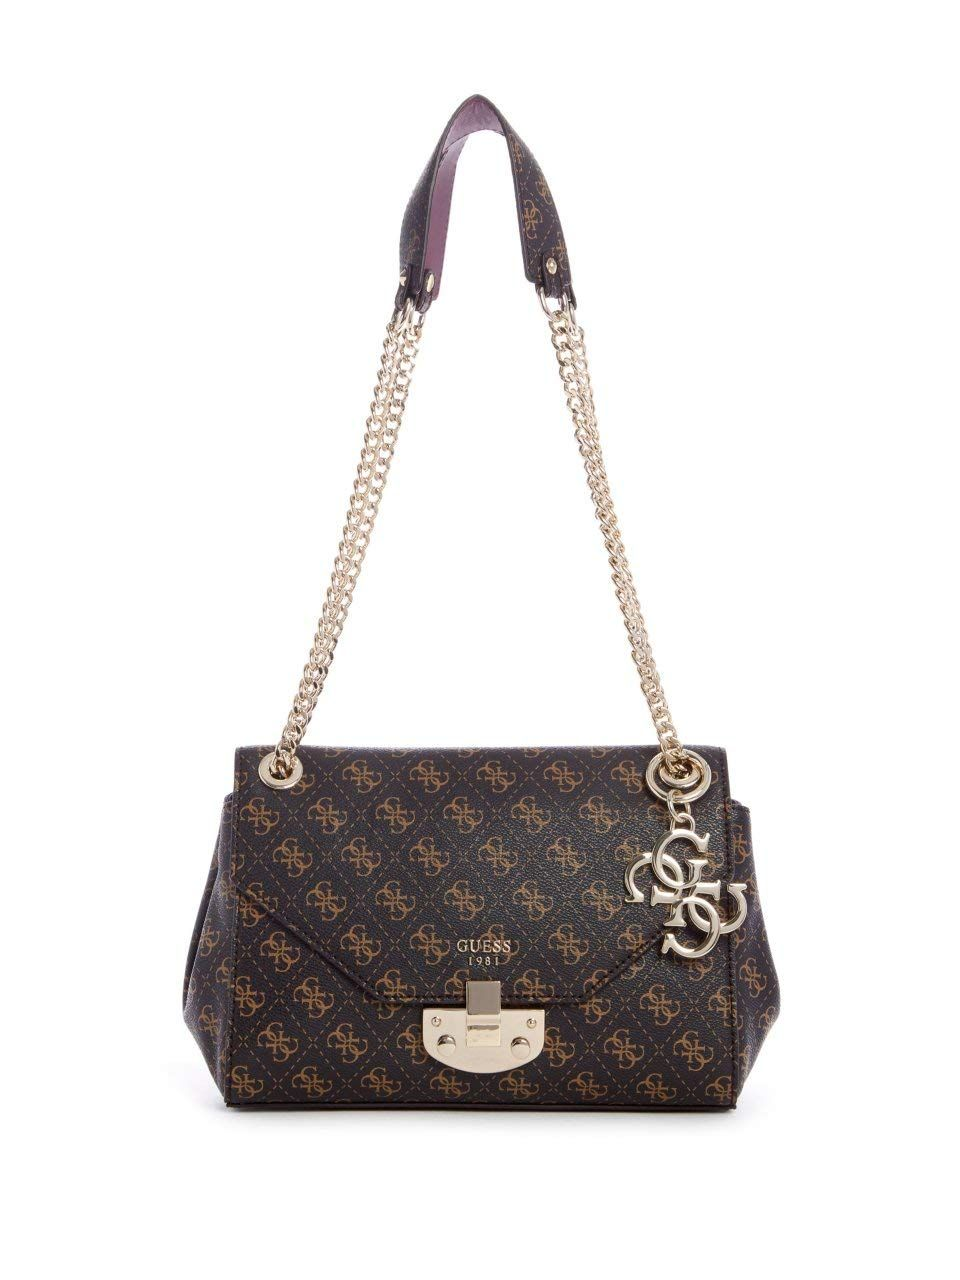 78adc9d8d07 GUESS Mia Logo Convertible Crossbody >>> Click image to review more  details. (This is an affiliate link) #handbags